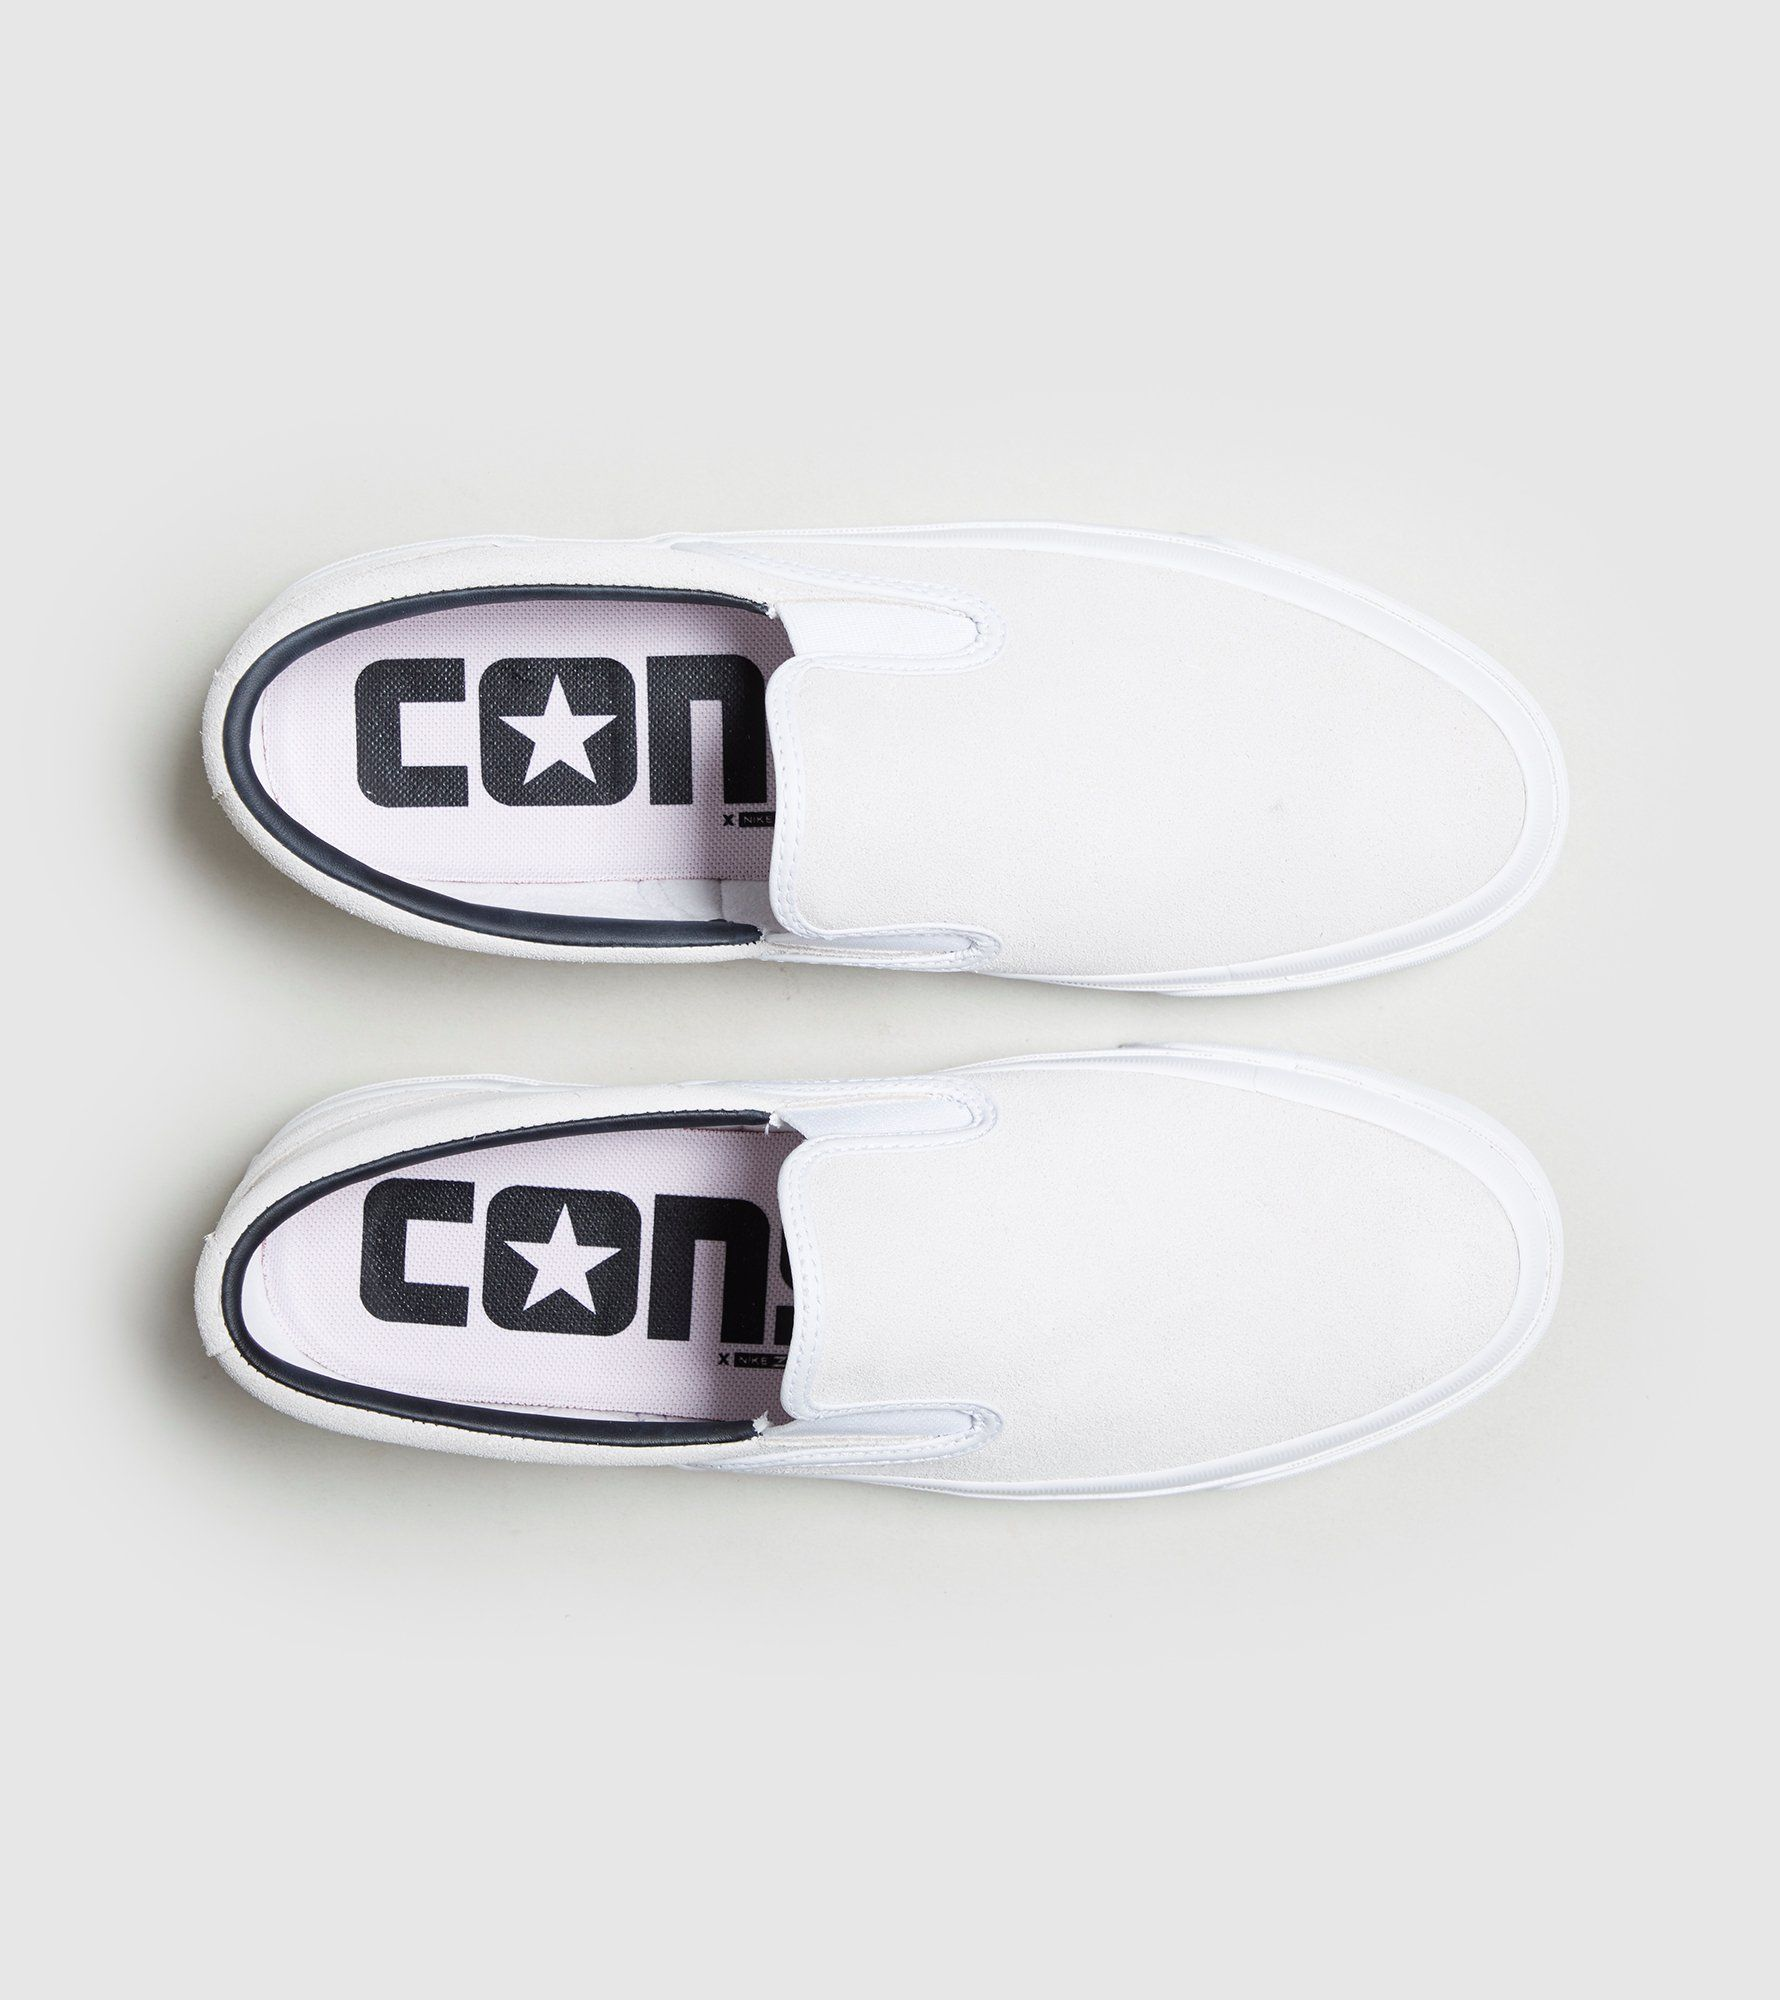 Converse One Star CC Slip-On